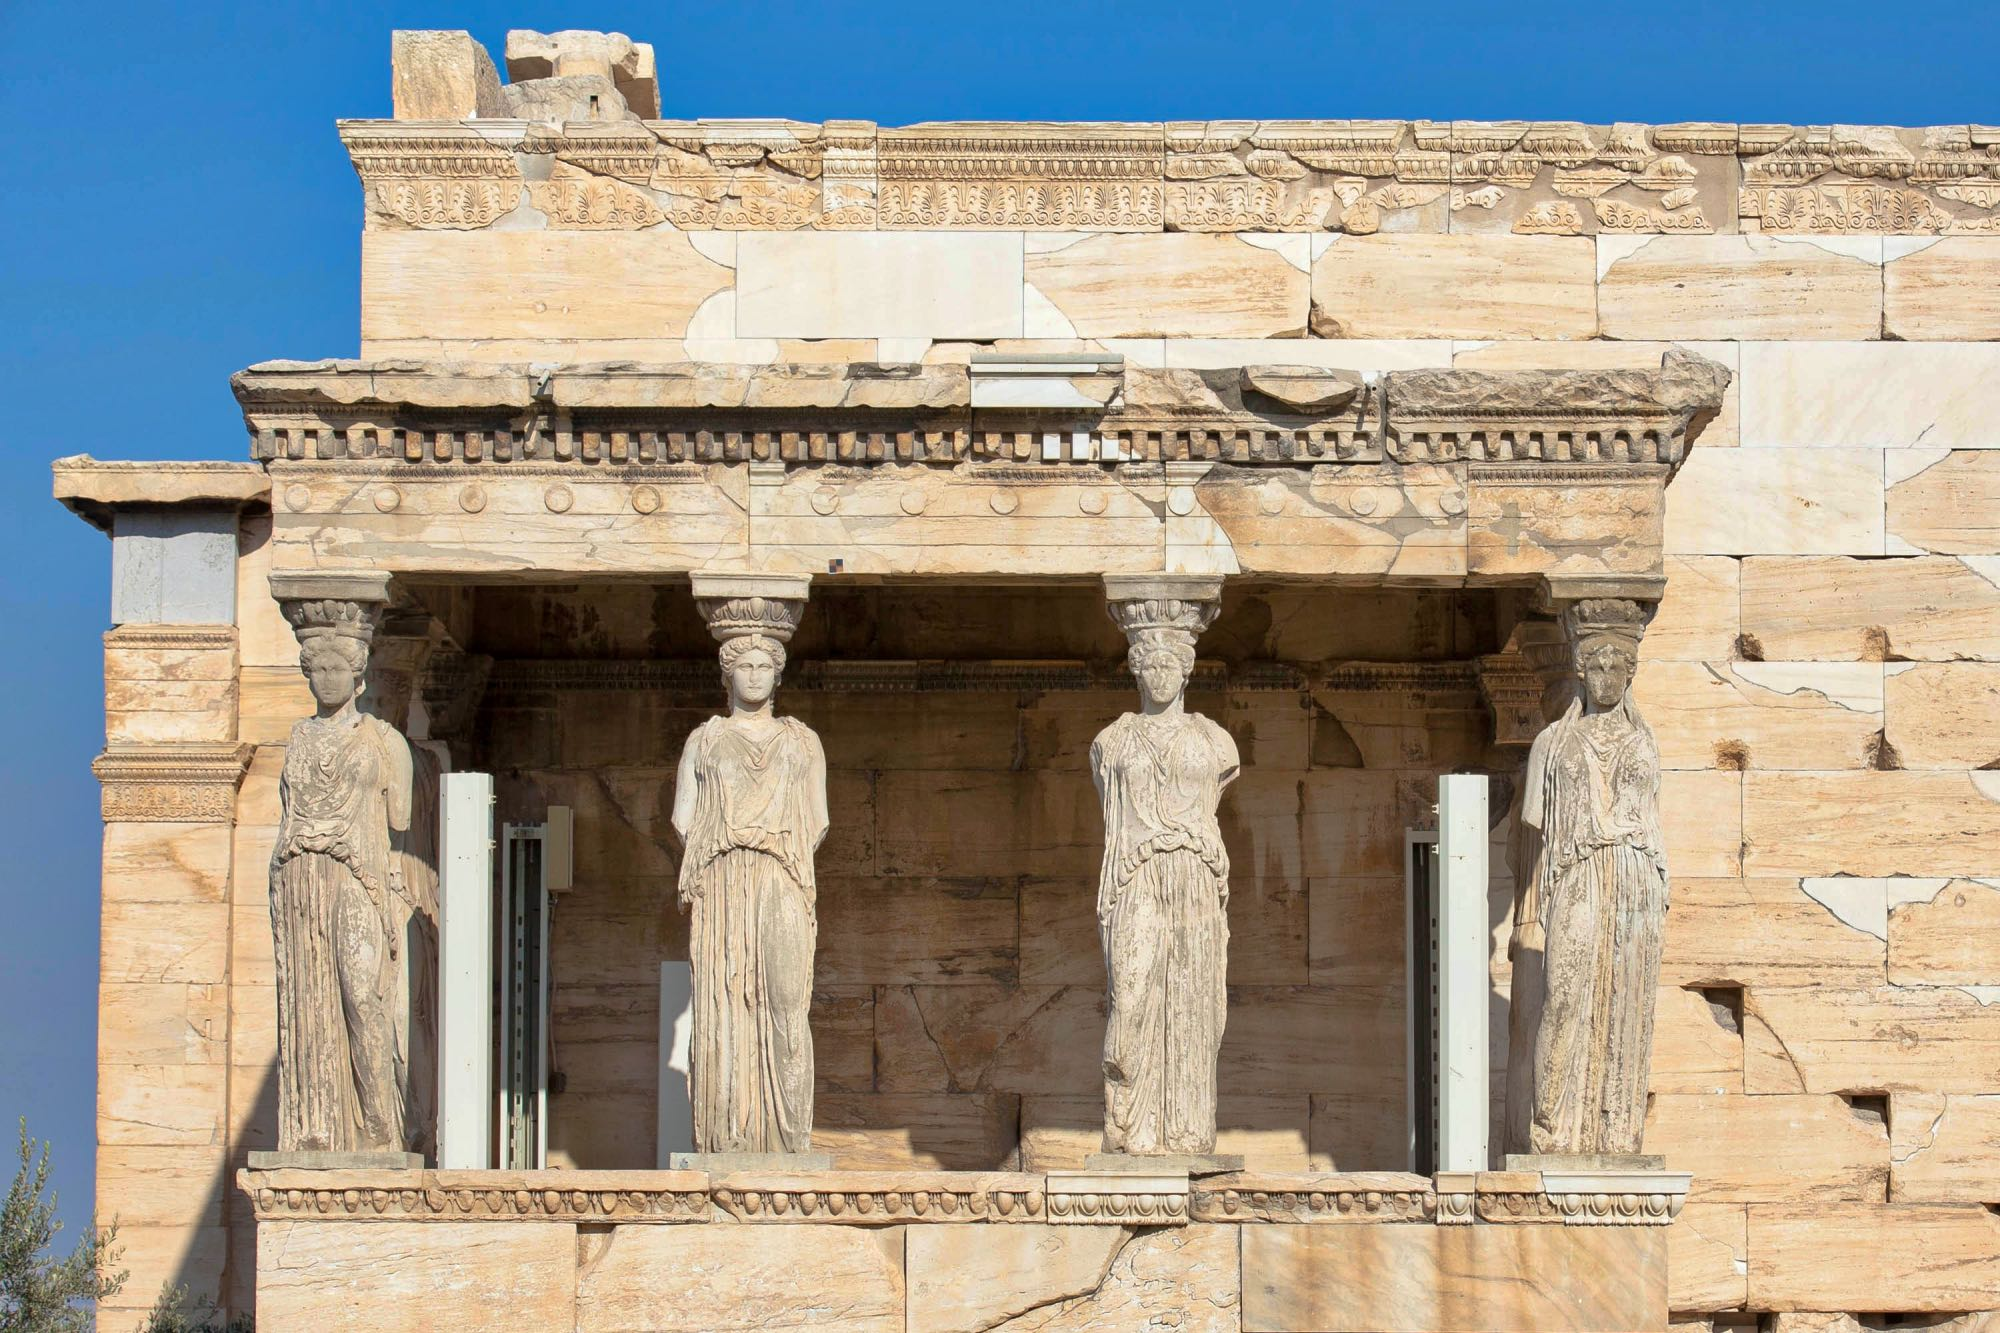 Temple of Athena at Acropolis